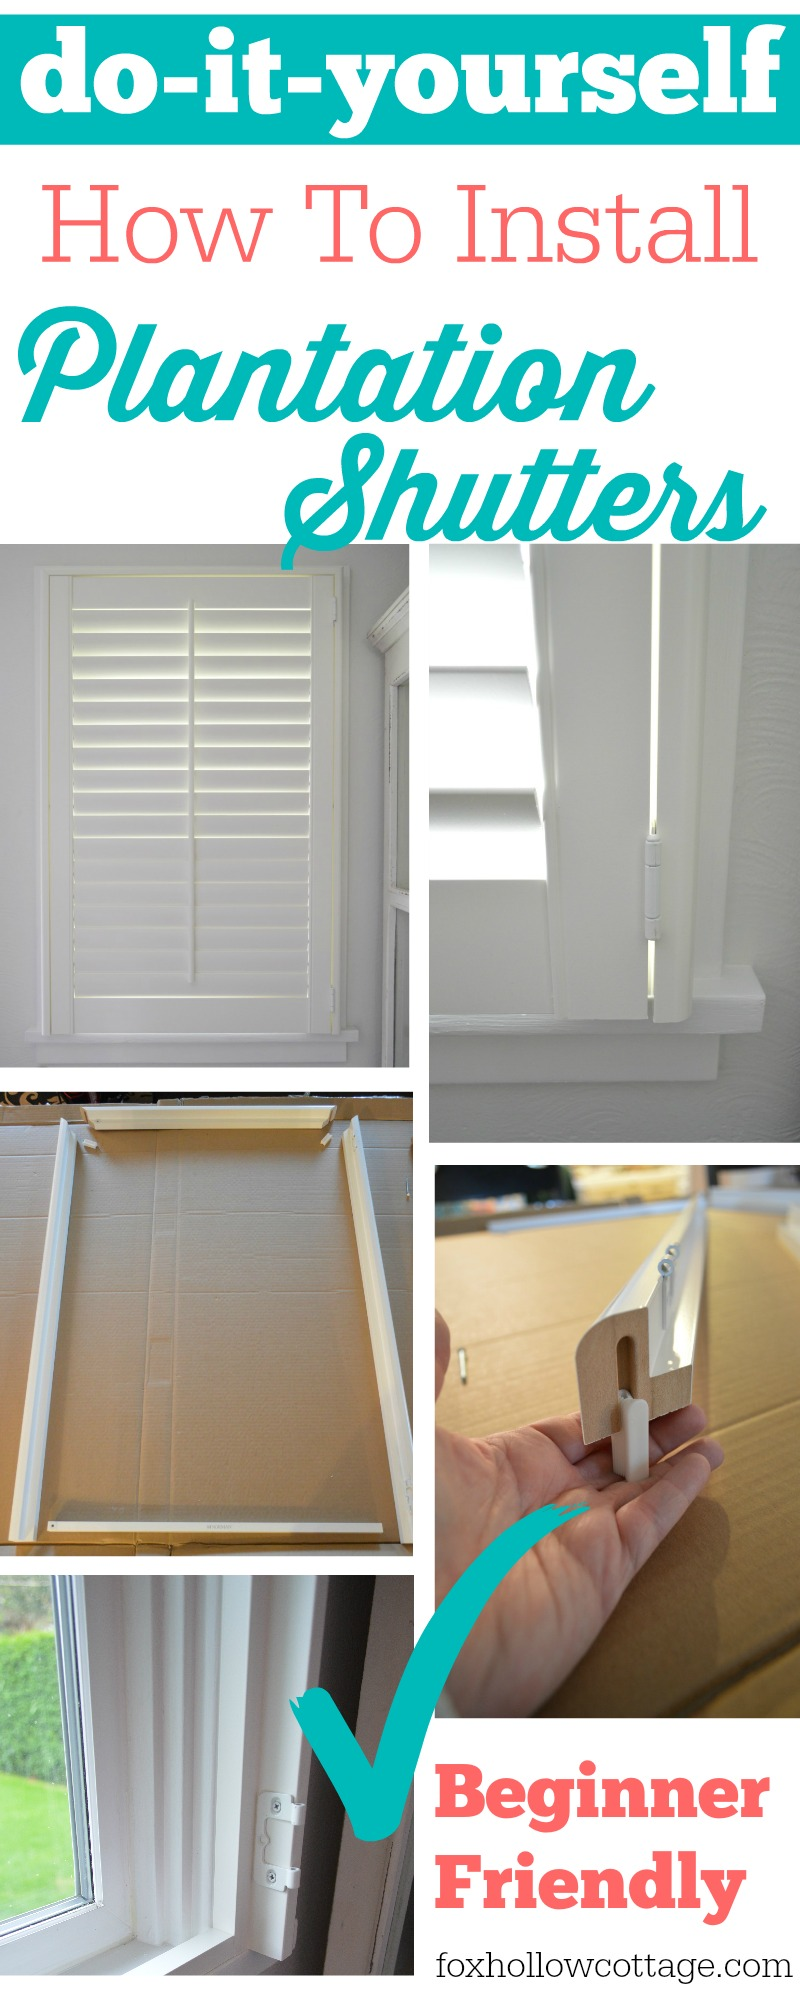 Easy diy plantation shutter installation fox hollow cottage do it yourself how to install plantation shutters solutioingenieria